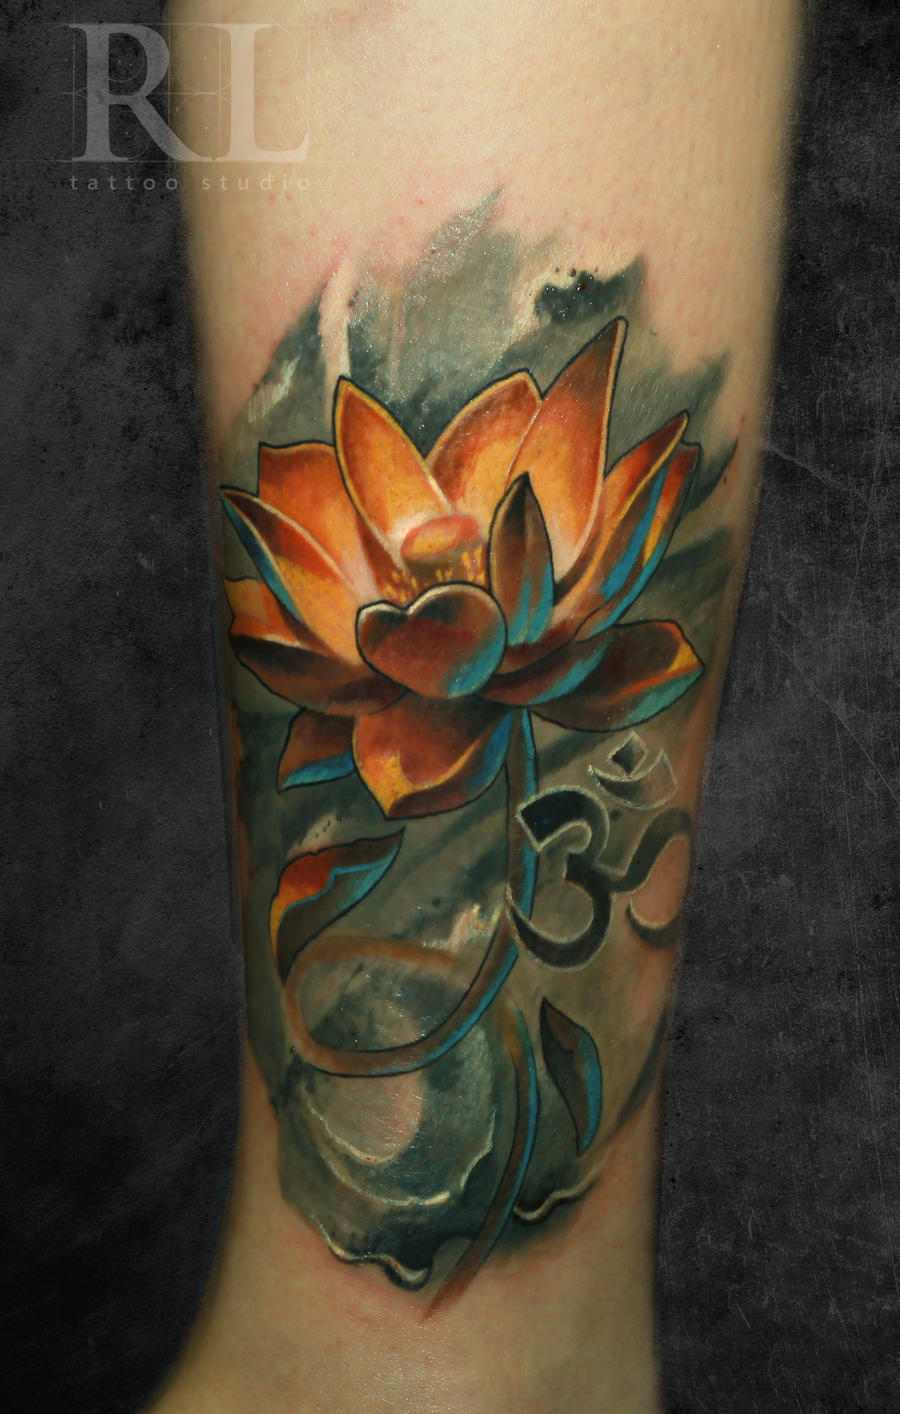 Lotusflowertattoo explore lotusflowertattoo on deviantart lotusflowertattoo explore lotusflowertattoo on deviantart izmirmasajfo Choice Image